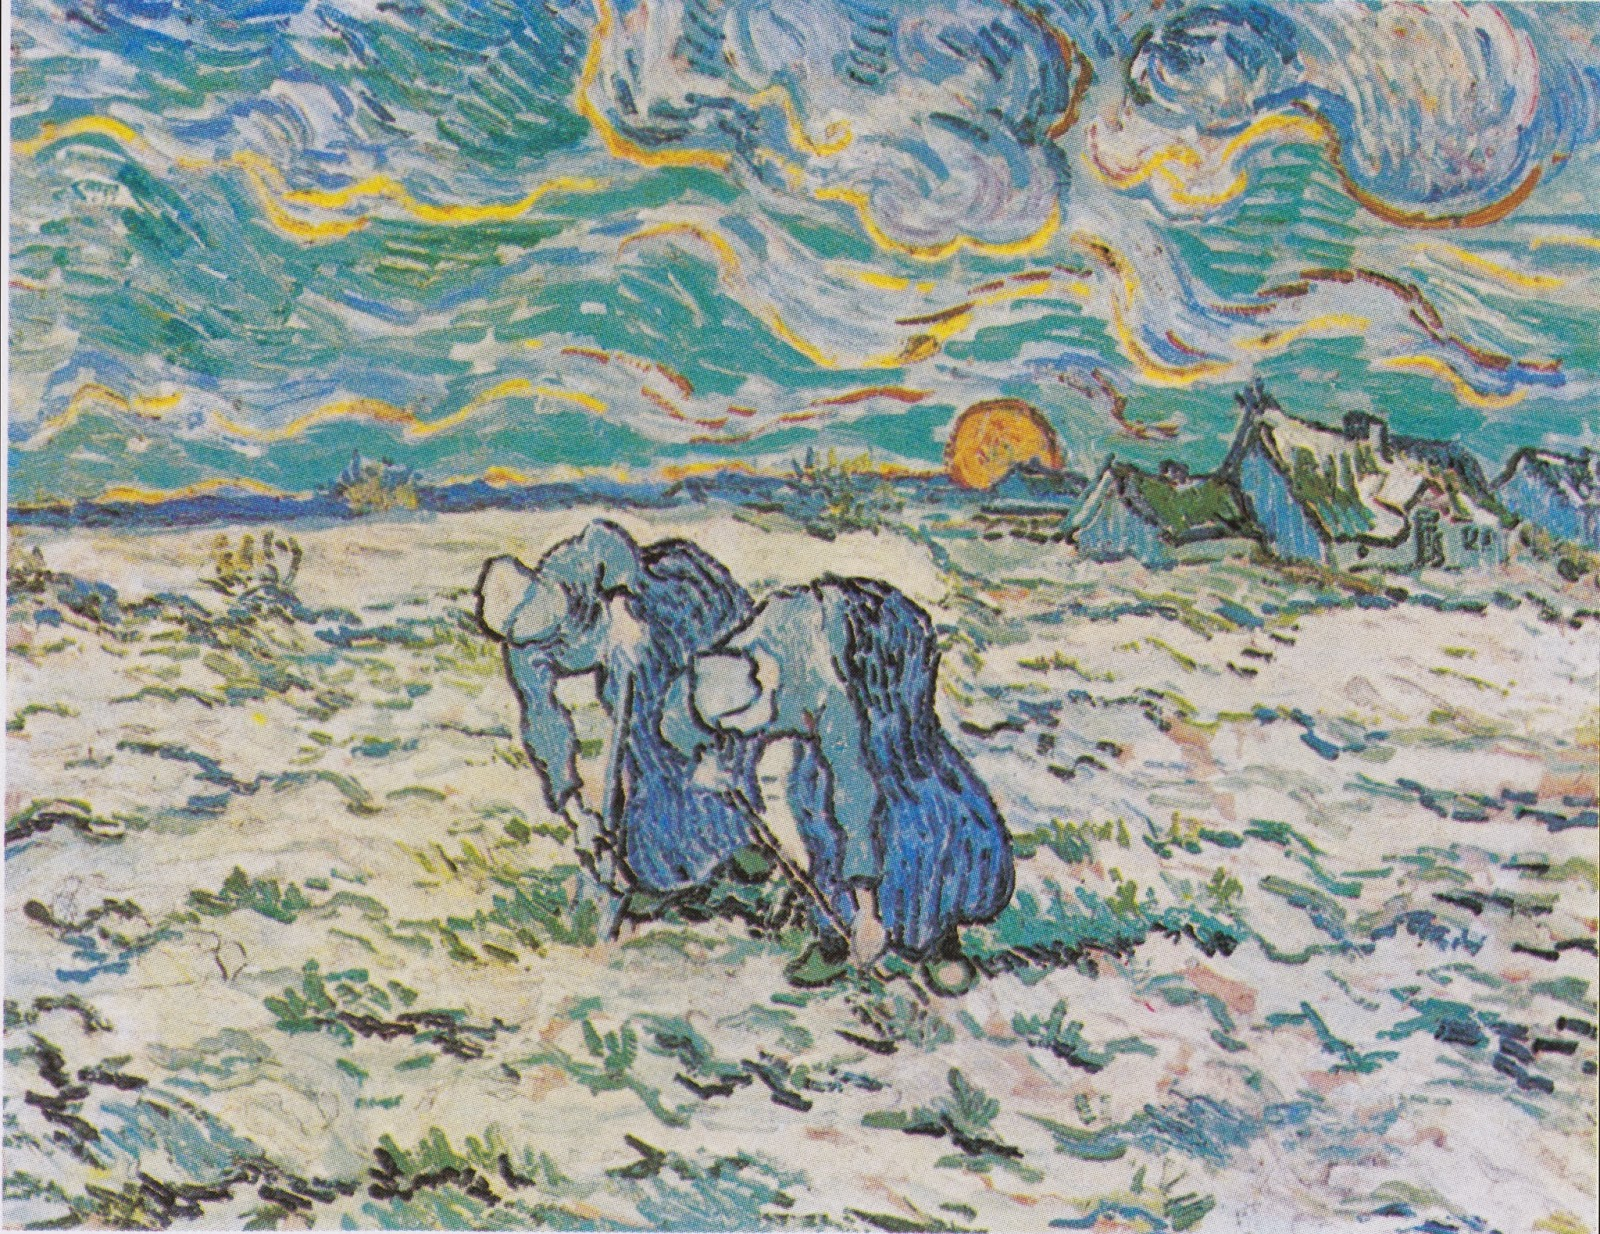 Two Peasant Women Digging in a Snow-Covered Field at Sunset, Vincent Van Gogh, 1890